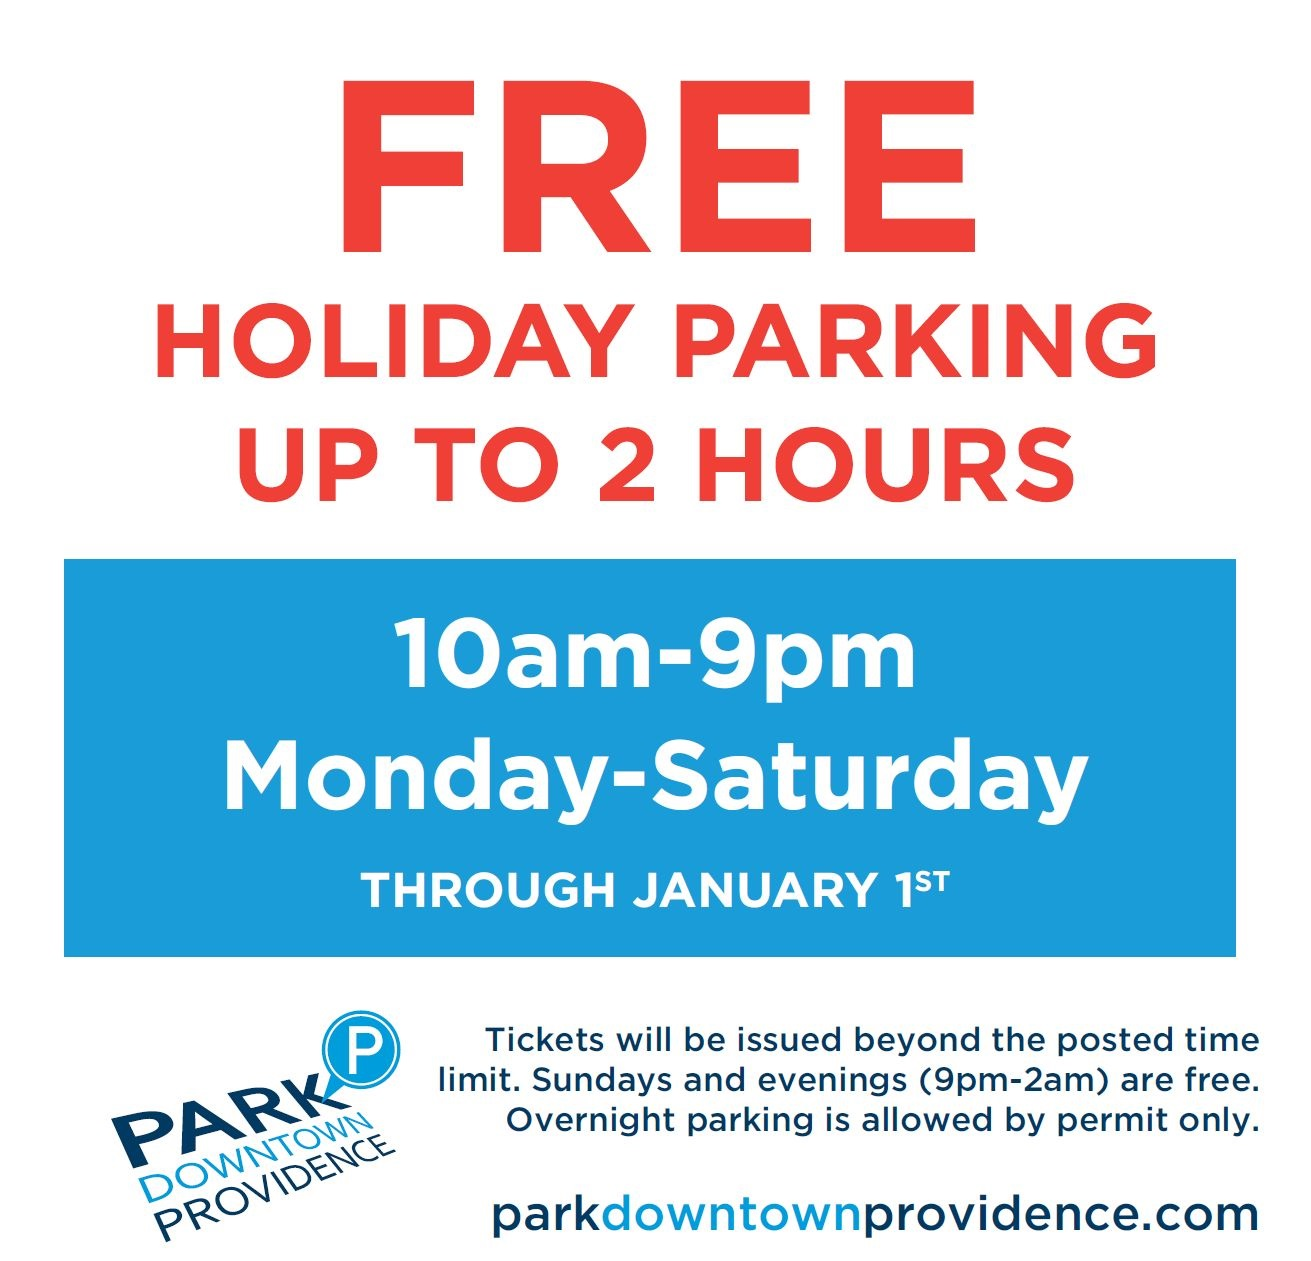 free 2 hour holiday parking downtown providence